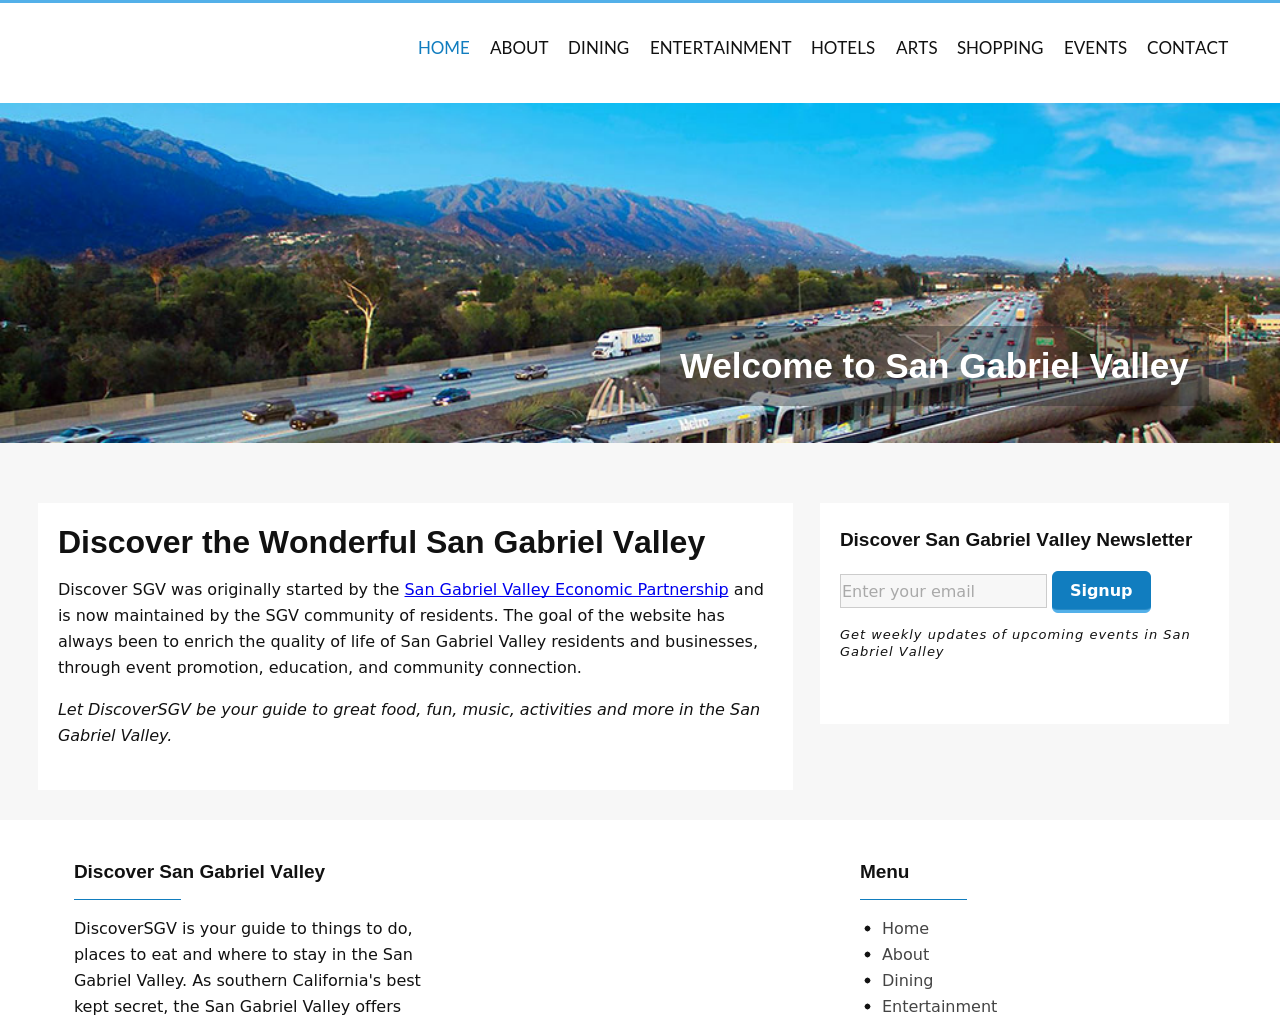 Discover-SAN-GABRIEL-VALLEY-Advertising-Reviews-Pricing